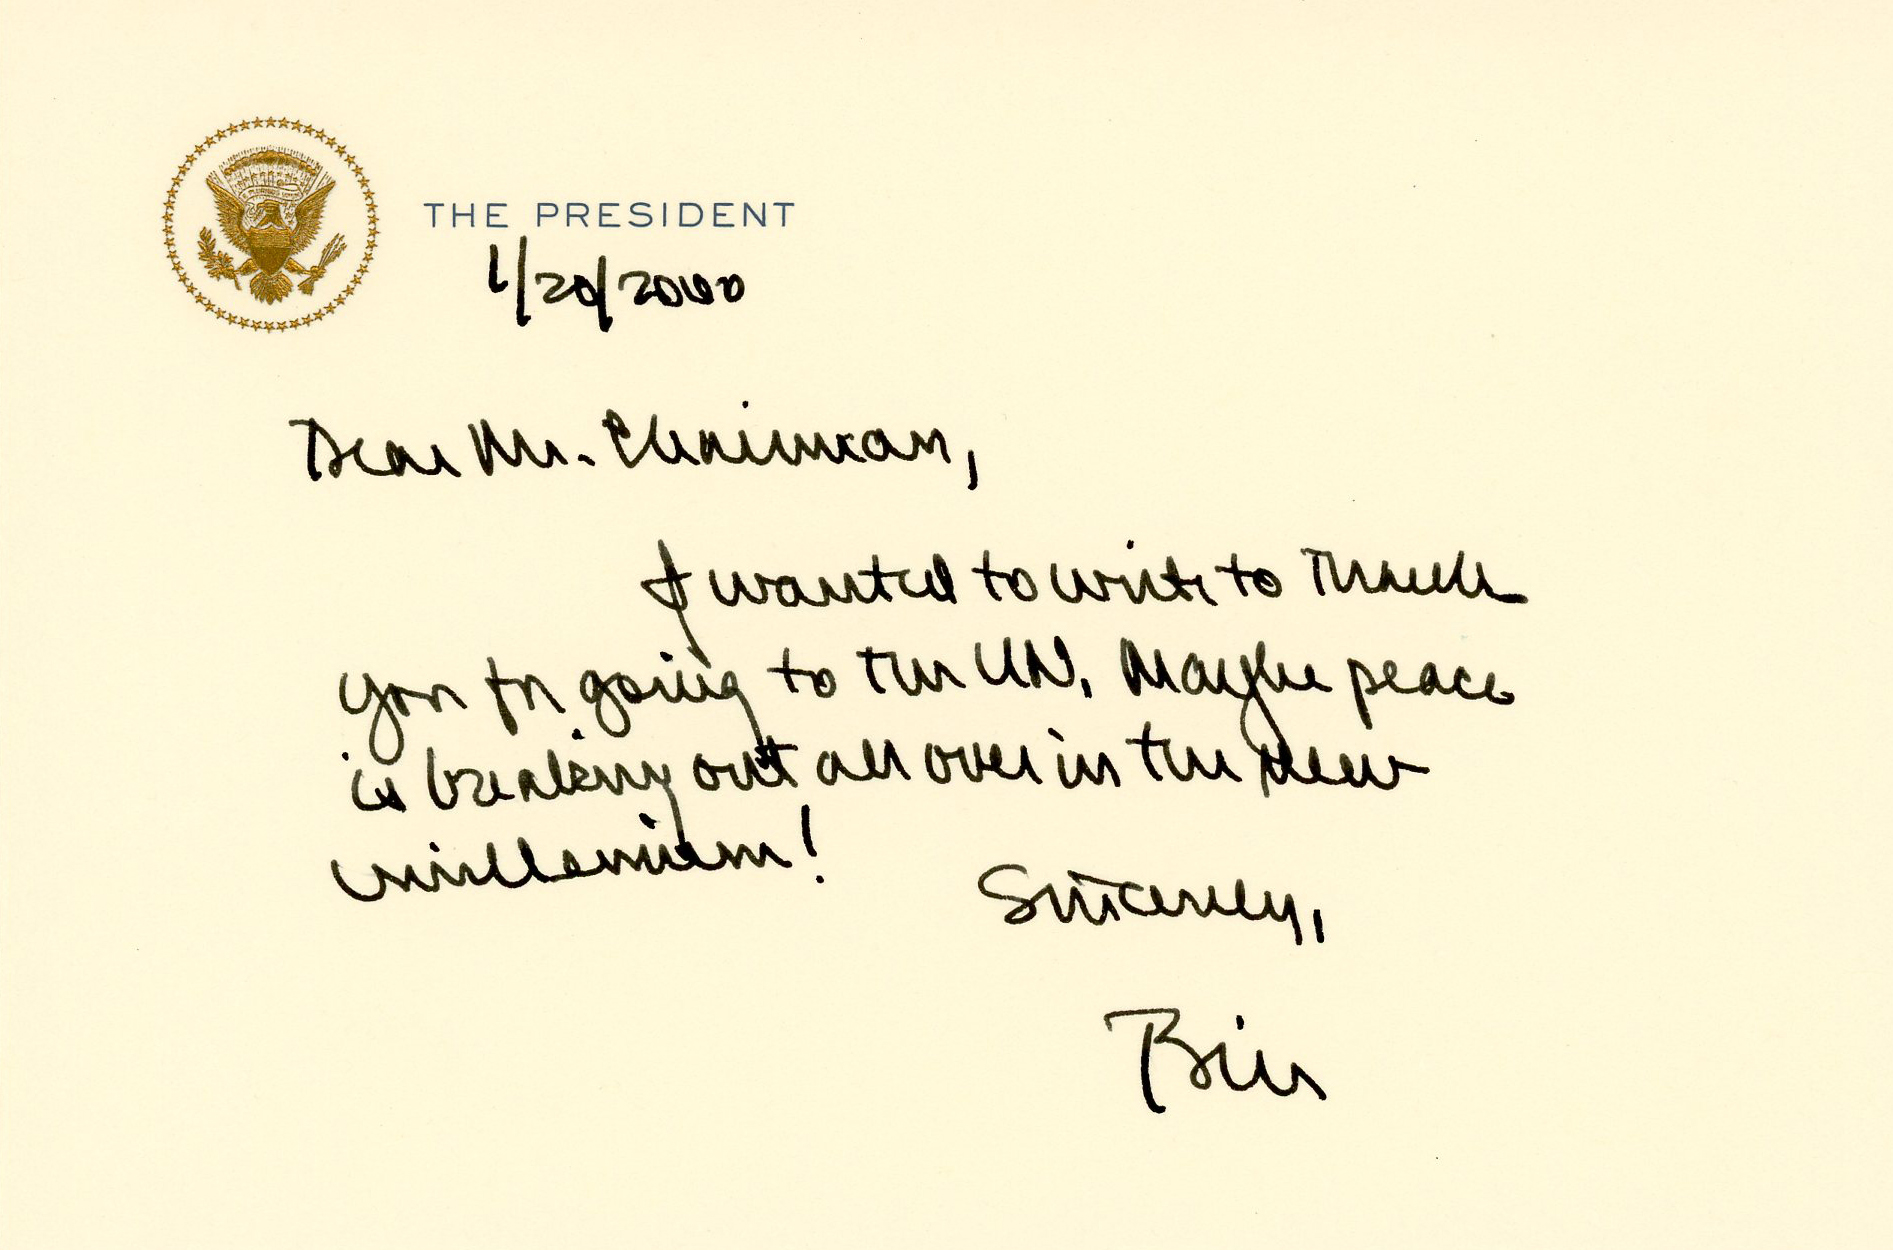 A handwritten note from President Bill Clinton thanking Helms for his work with the United Nations.